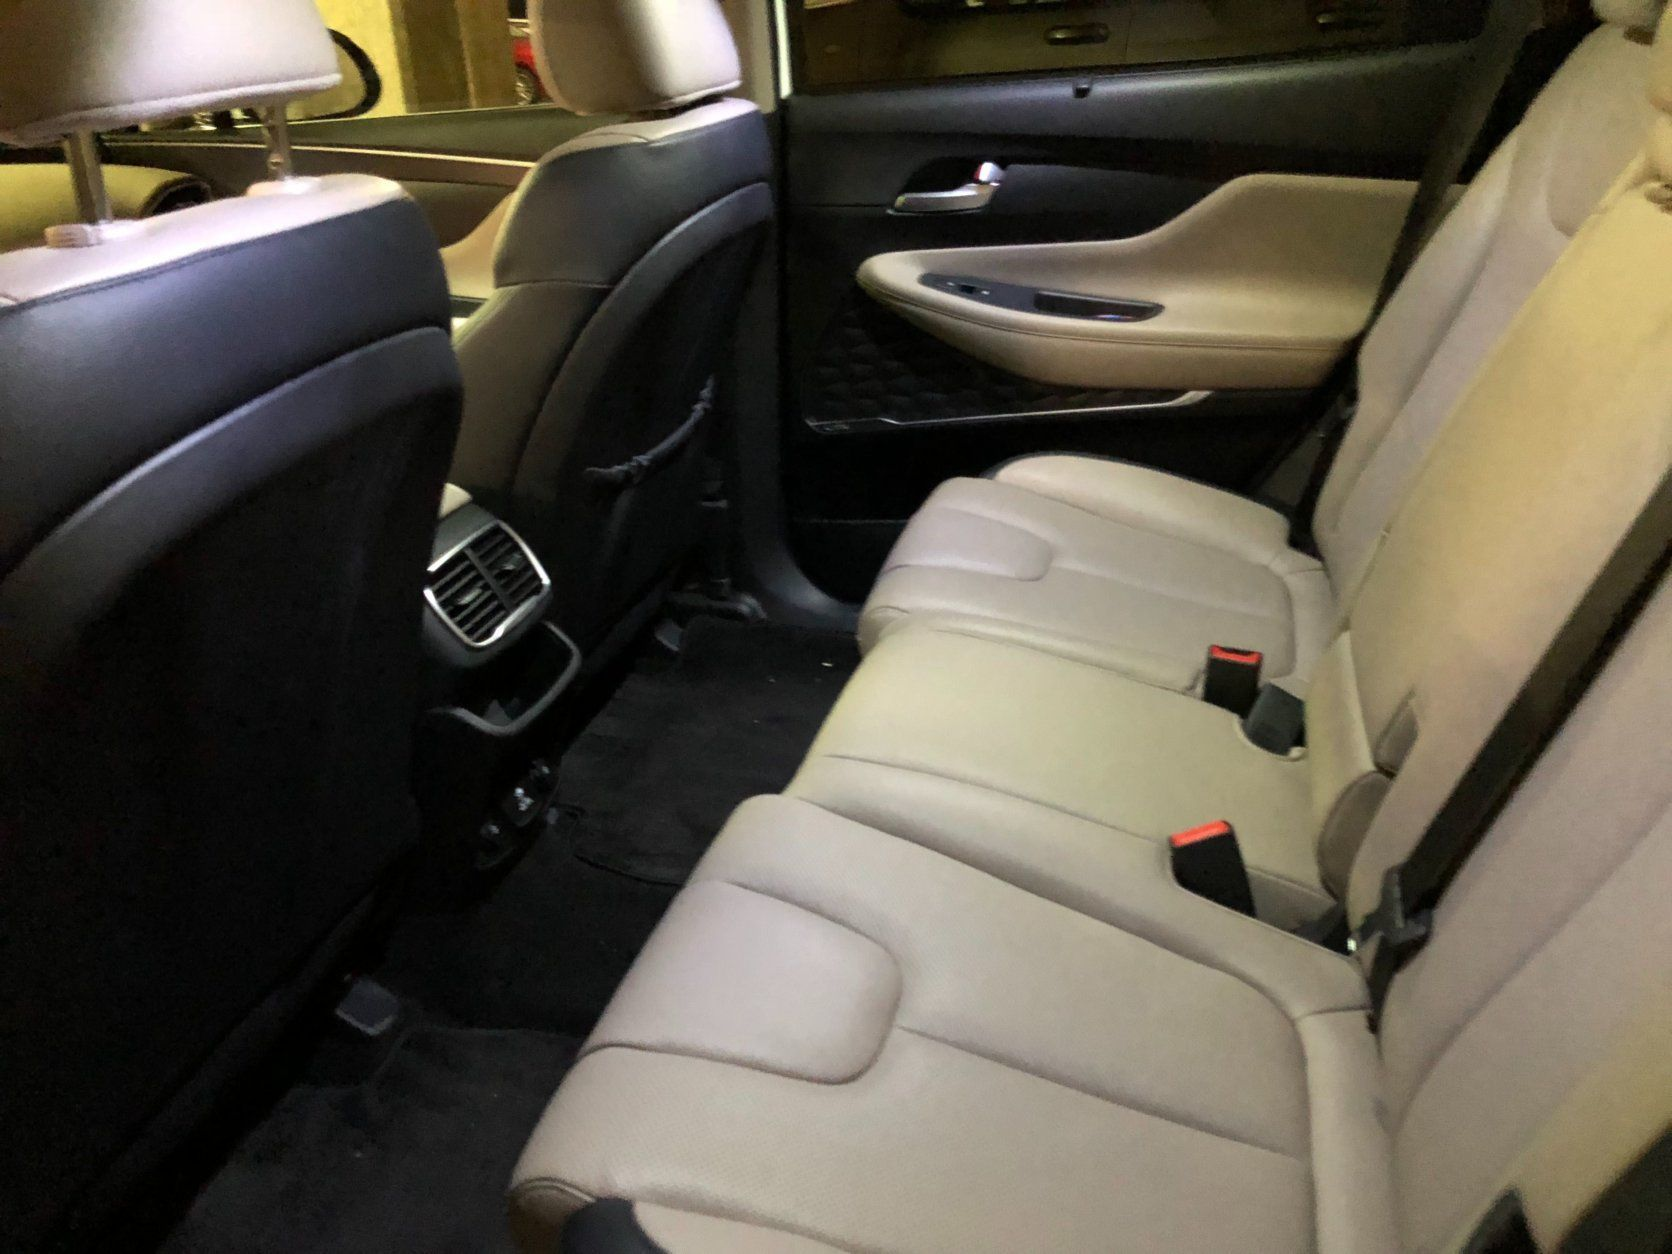 <p>Those in the back seat have good space and while two adults have no problem with space in the back, a third adult would wish for a bit more shoulder space.</p> <p>The two-tone color scheme used throughout the interior adds a touch of class and the look of a pricey luxury brand.</p>